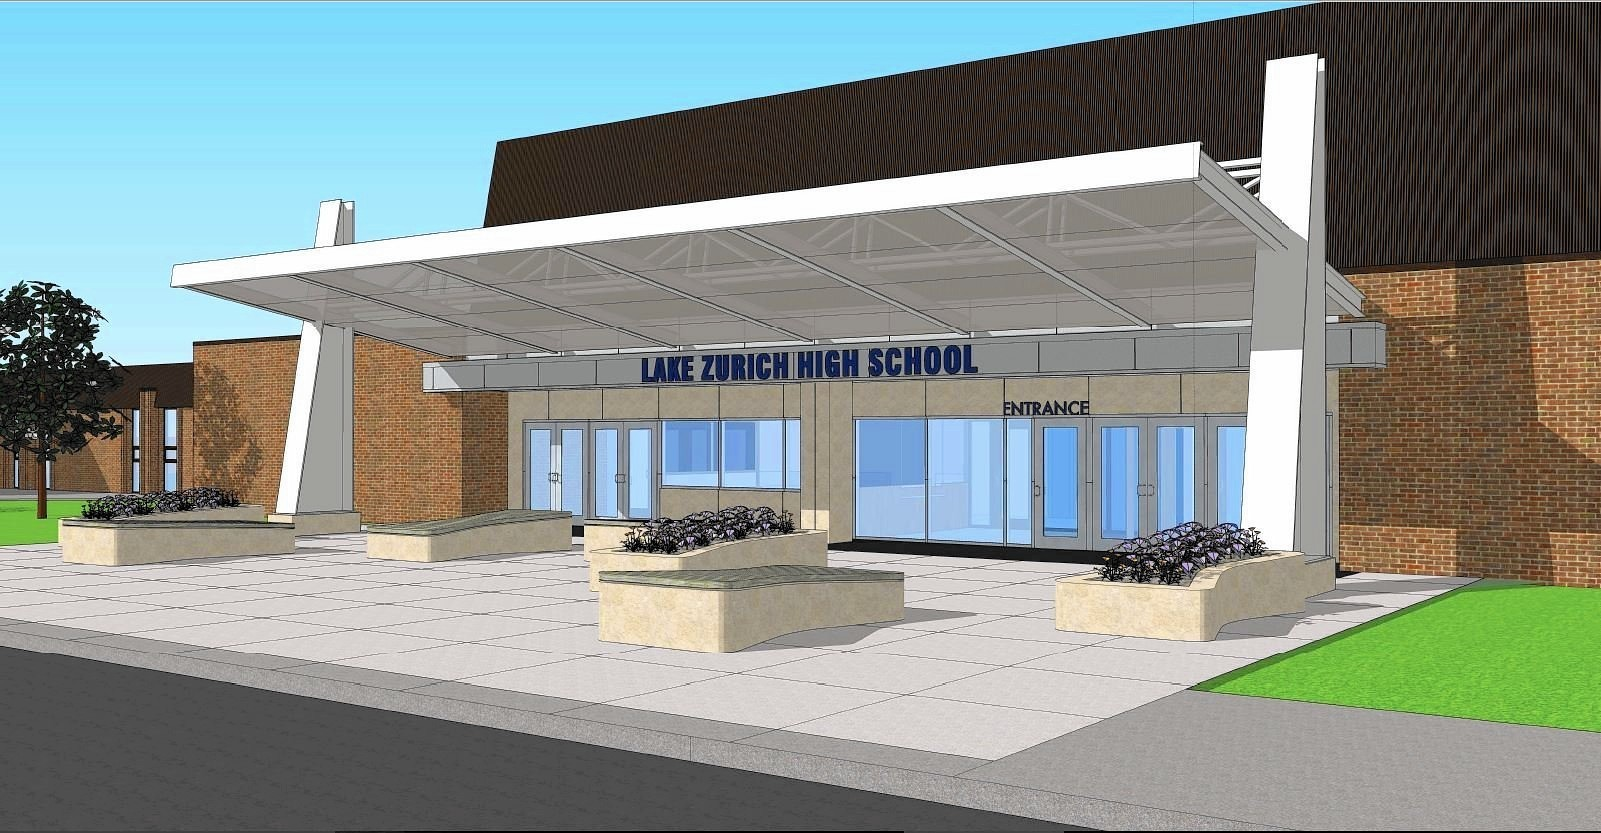 District 95 board approves new secure entrance at Lake